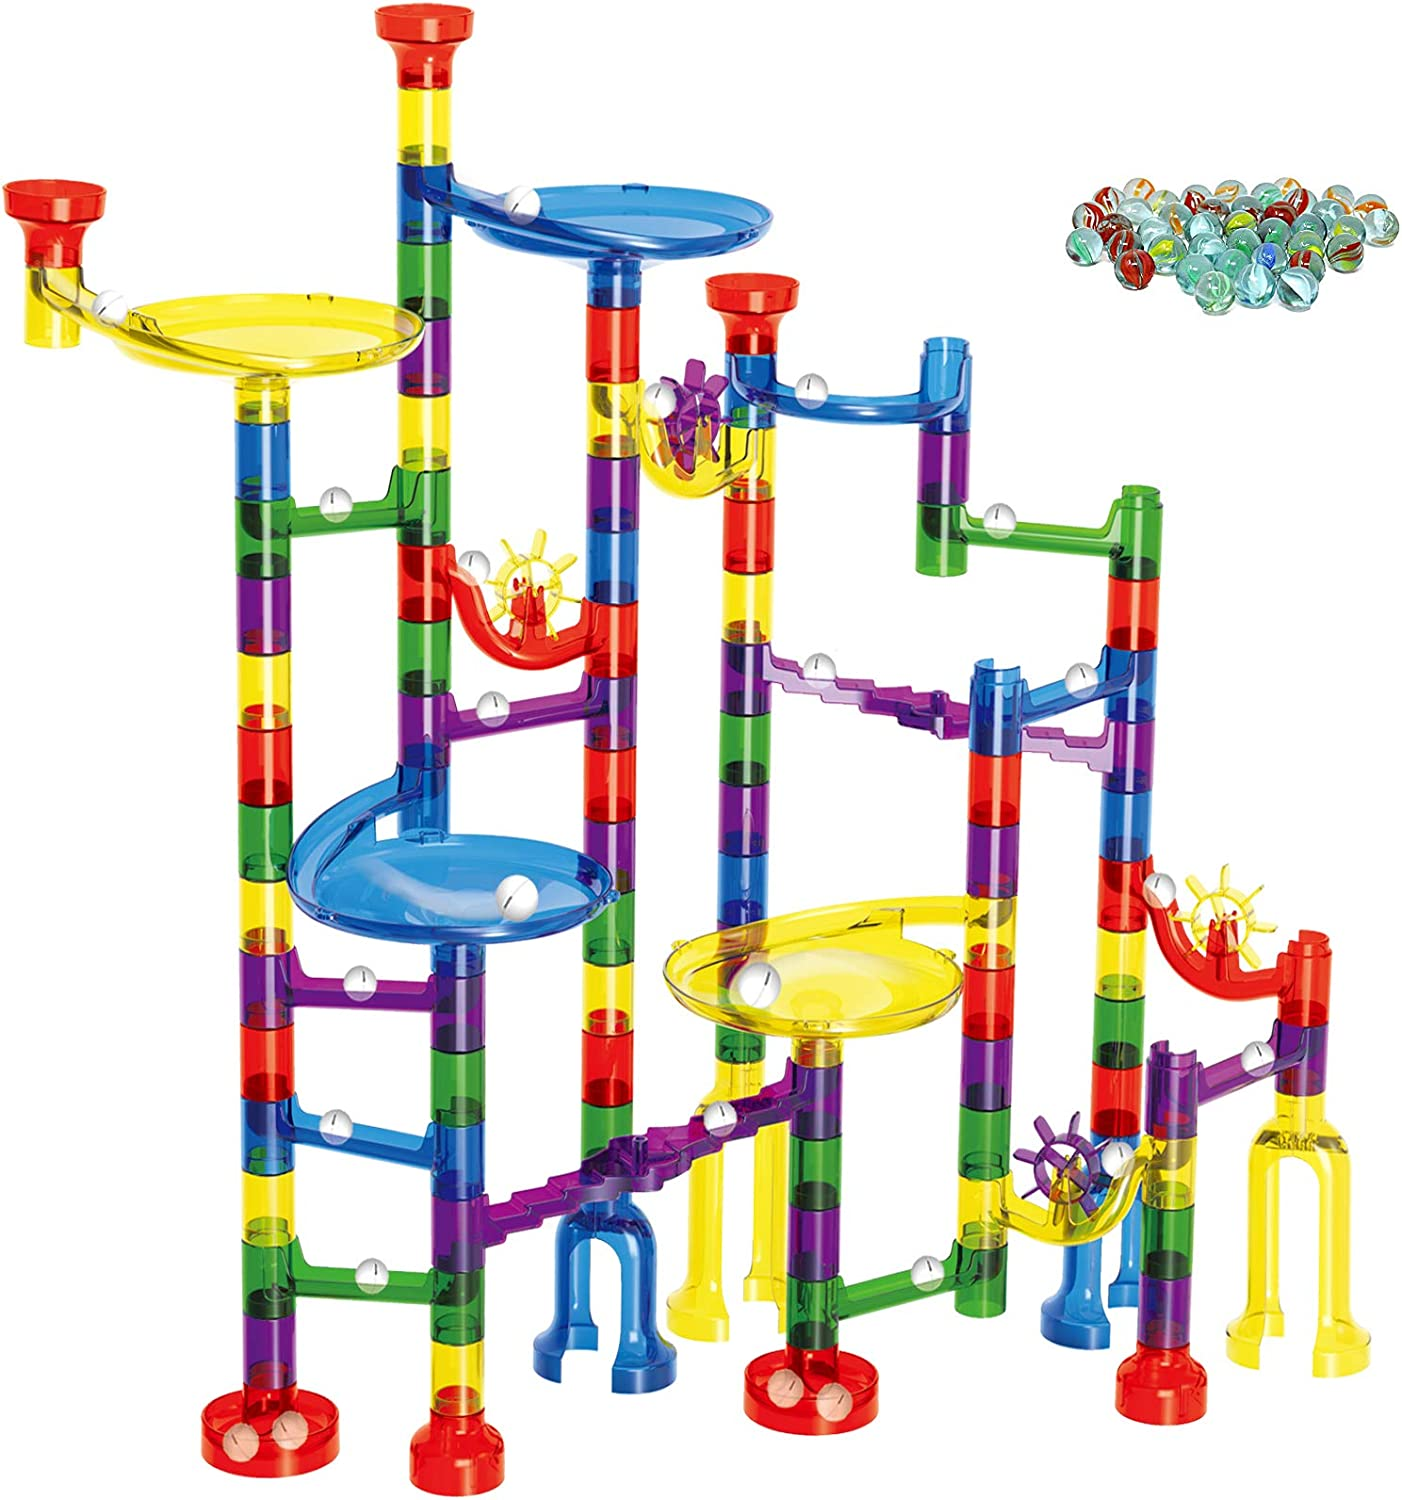 EOYIZW Marble Run for Kids Premium Set- 200 PCS Marble Runs Maze Game Educational Building Block Toy- Marbles Run Track Gift for 4 5 6 7 Year Old Boys Girls (90 Plastic Pieces + 110 Marbles)